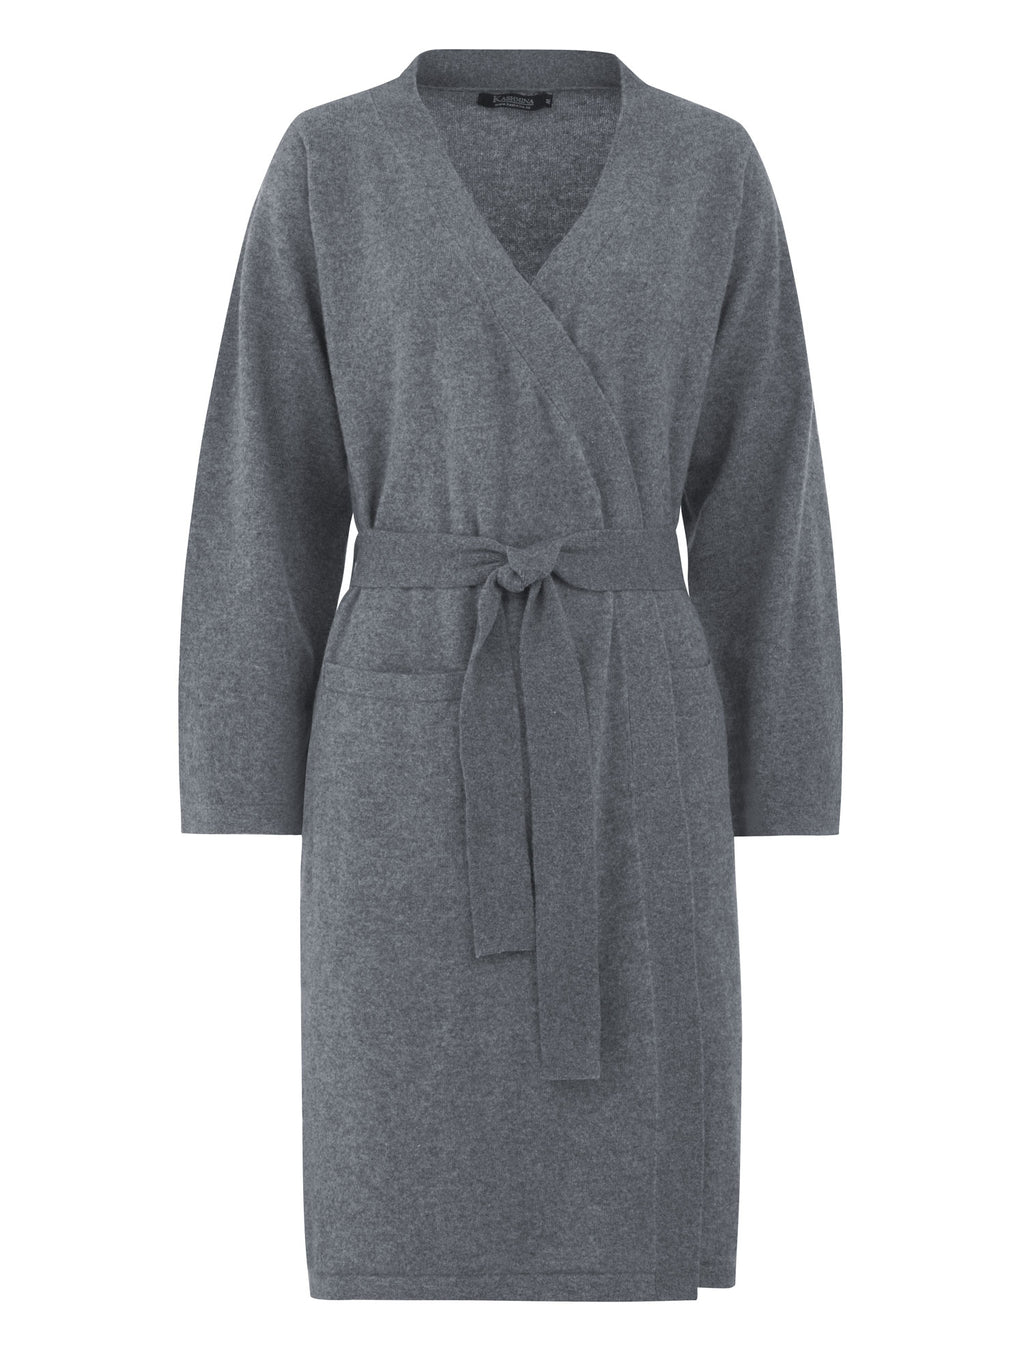 Morning robe Classic in 100% cashmere by Kashmina